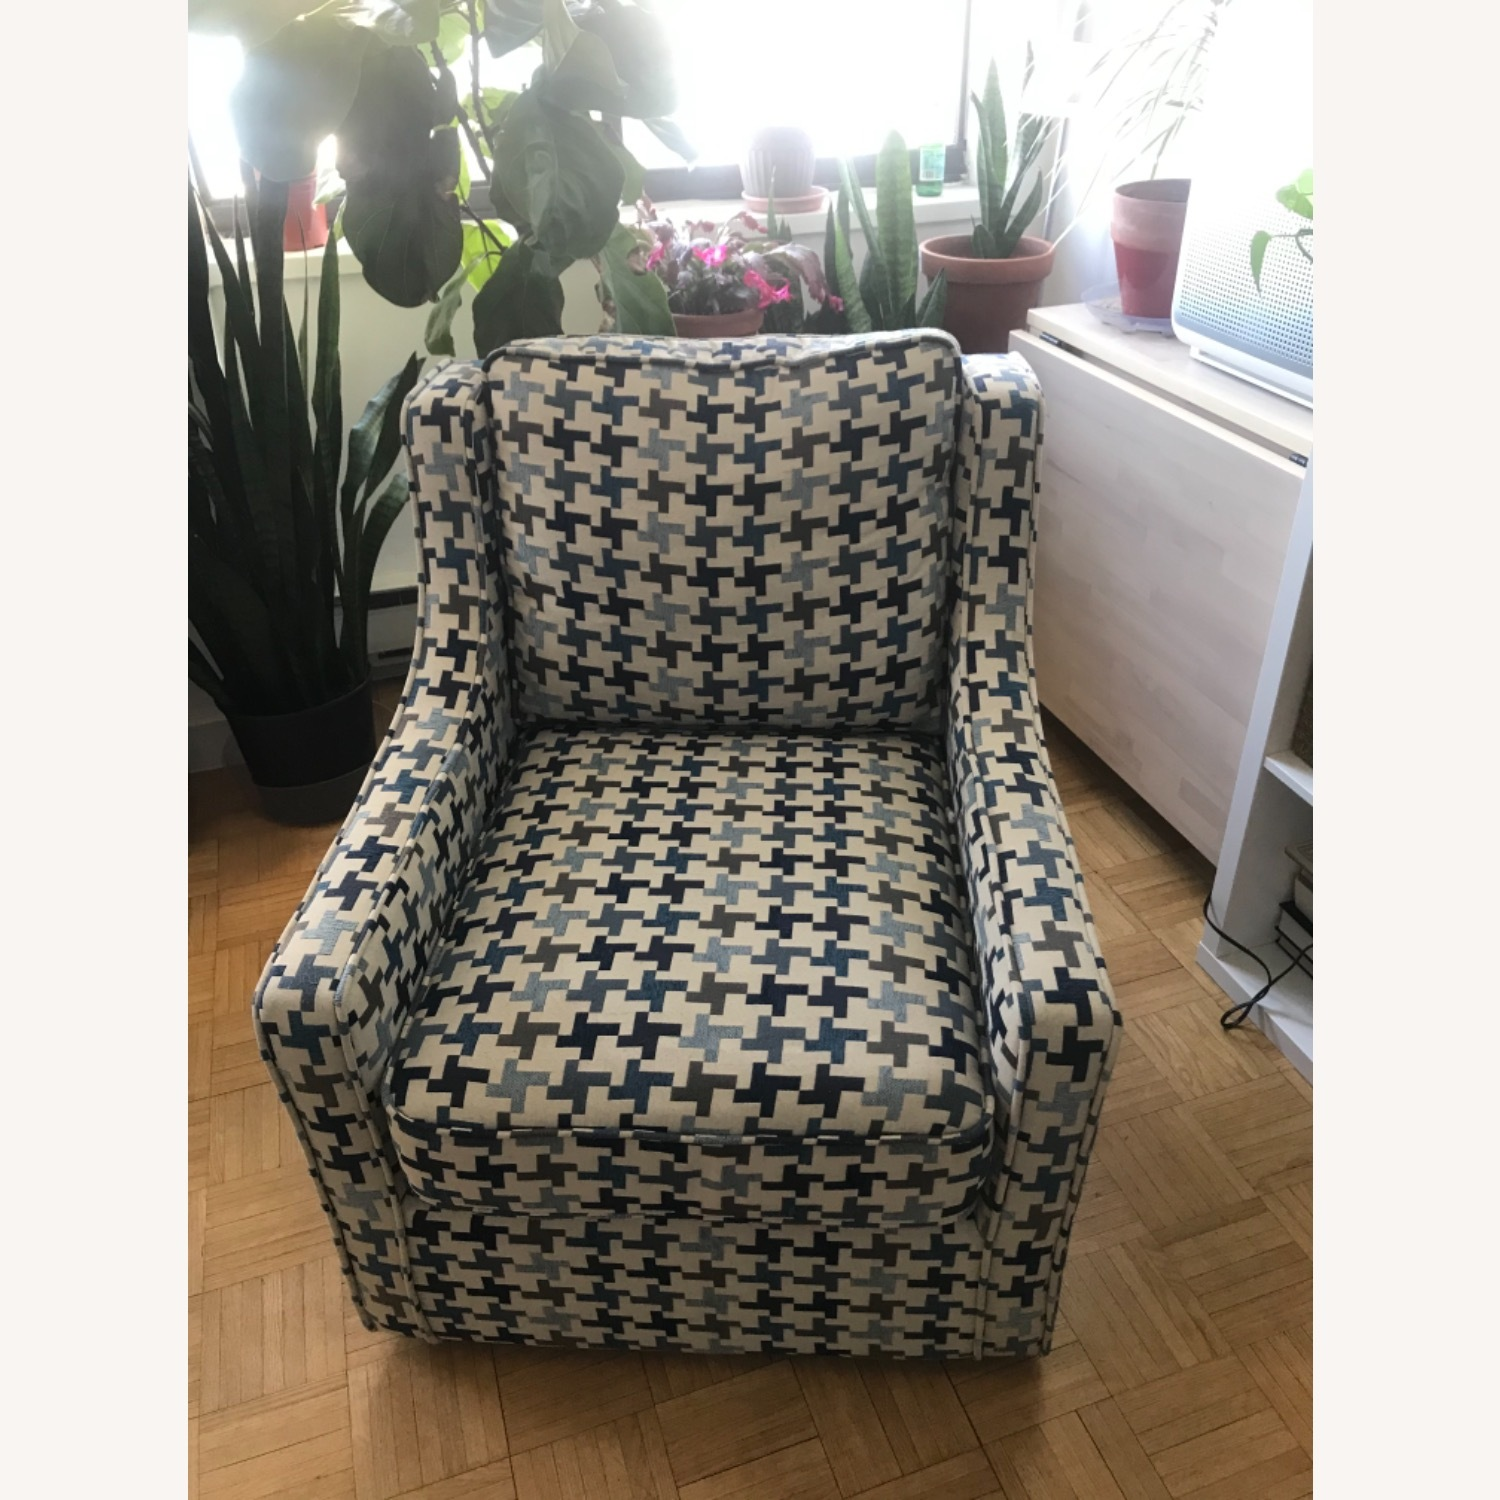 Bob's Discount Furniture Blue Patterned Armchair - image-2